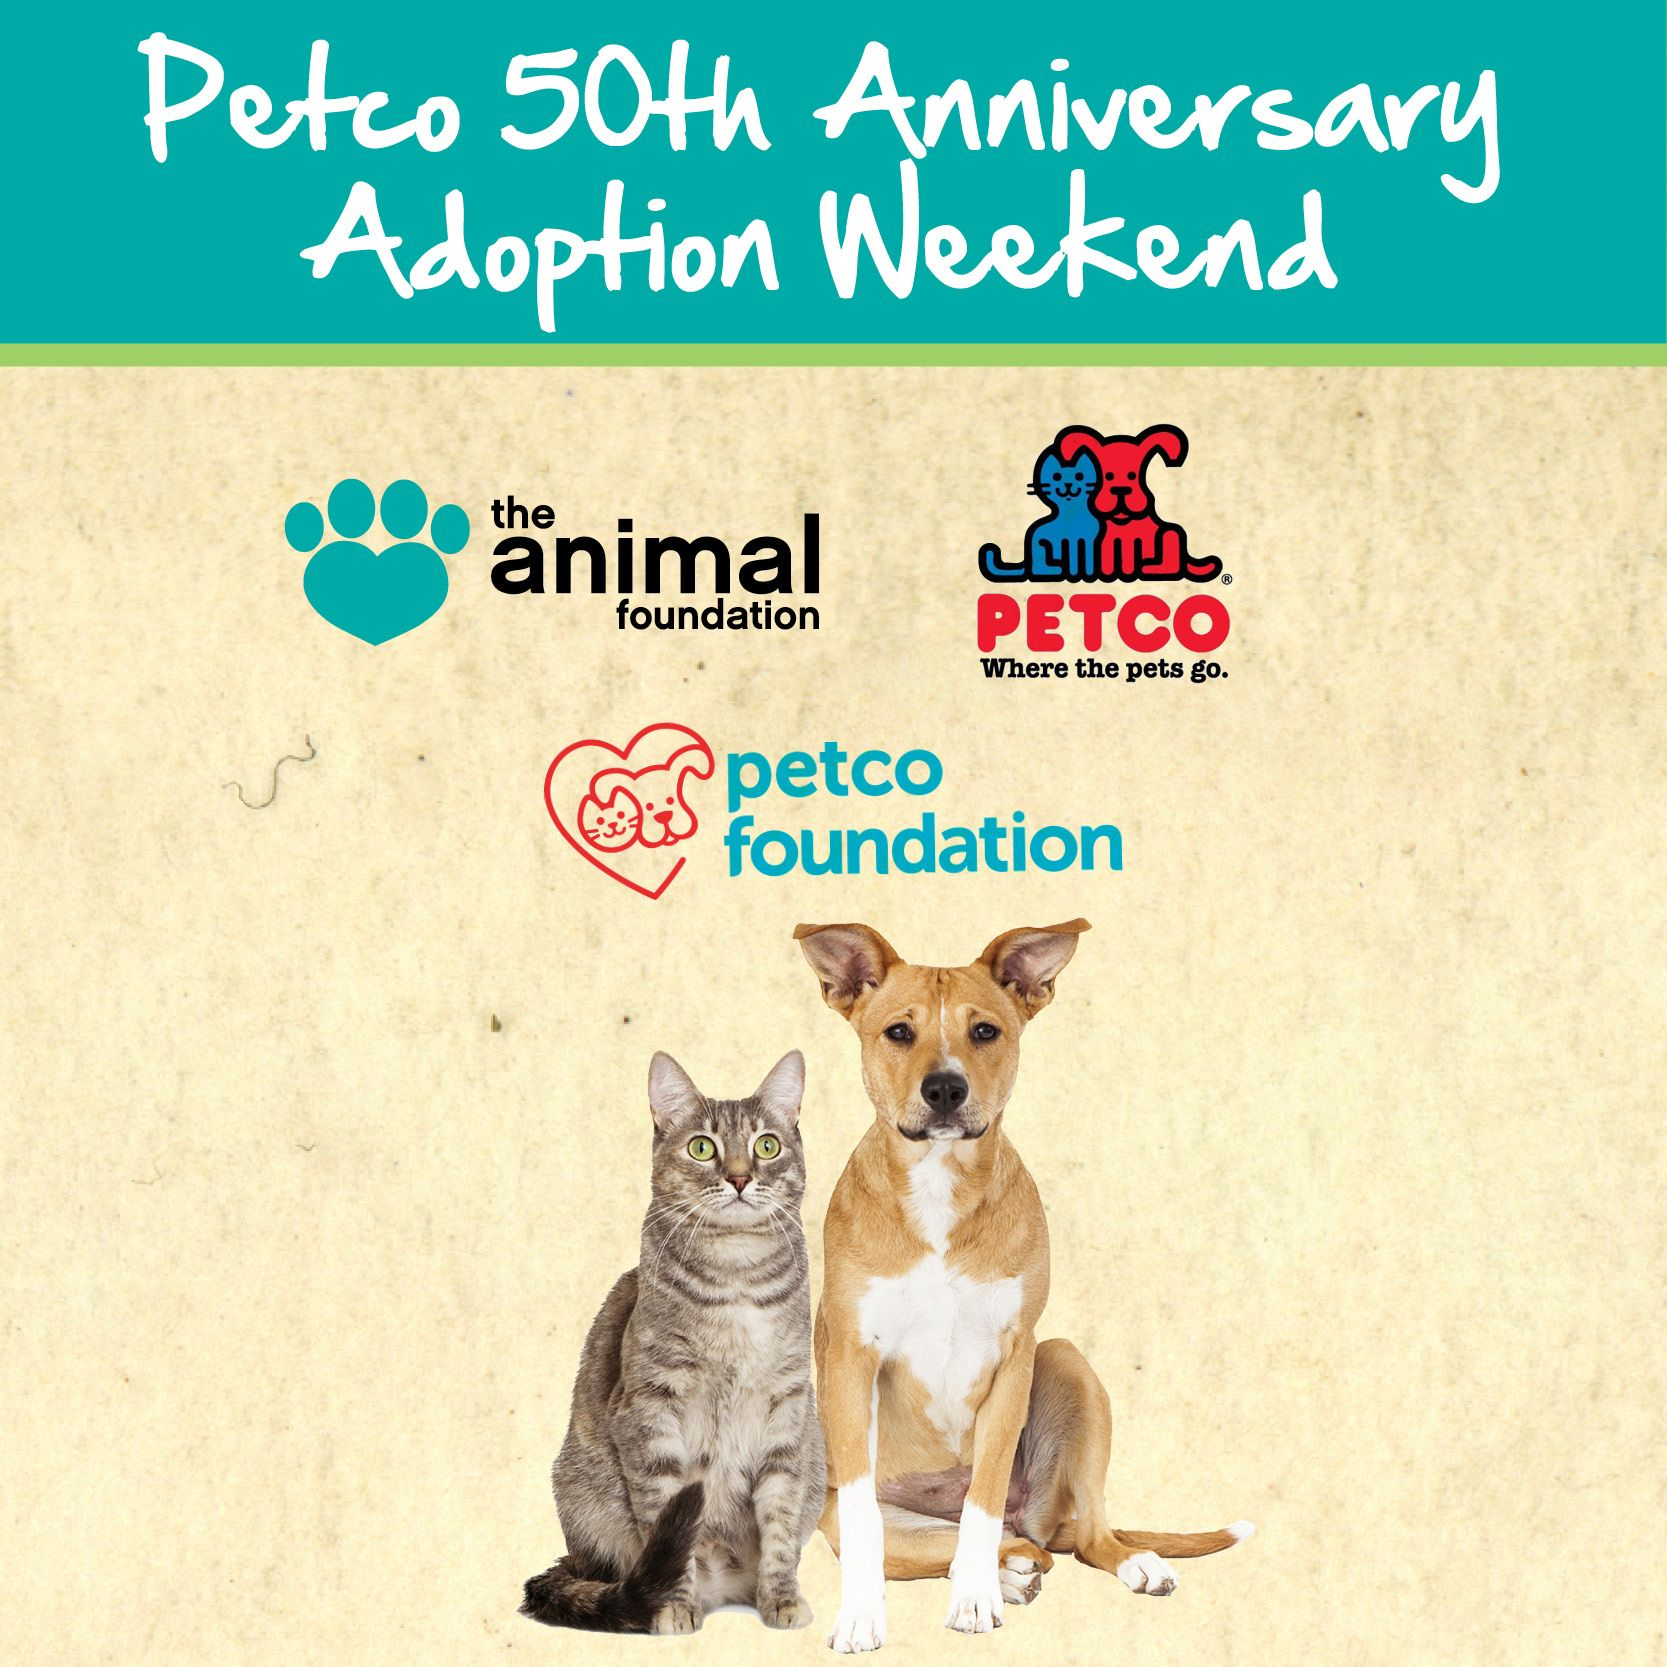 This Weekend We Will Be Helping Petco Celebrate Their 50th Anniversary With Adoptable Pets We Will Be Holding Adoption Events At Petc Petco Pet Adoption Event